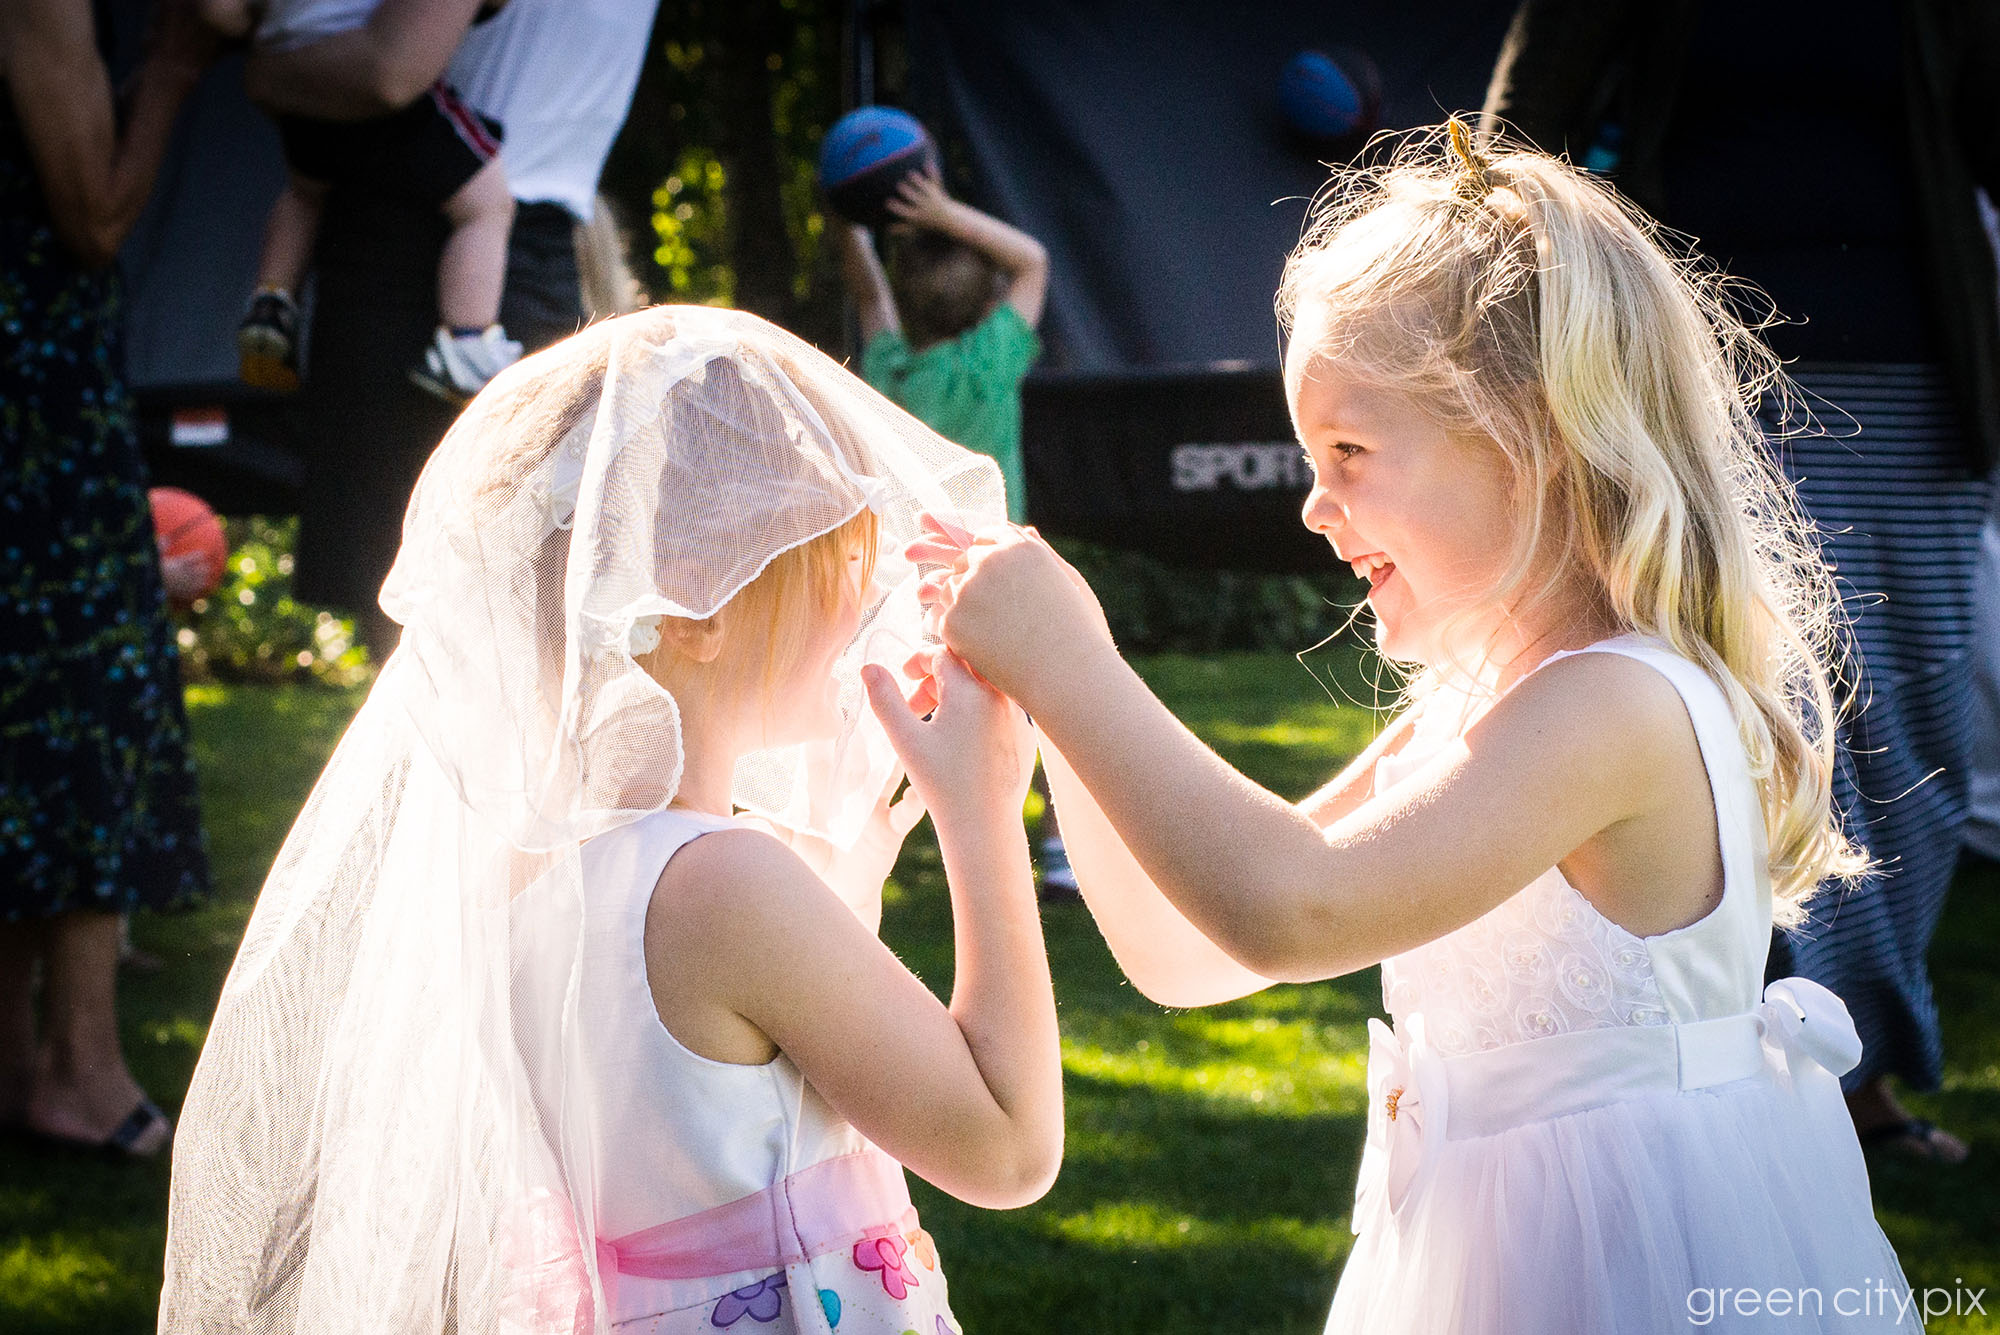 There were lots of cute kids at the wedding.